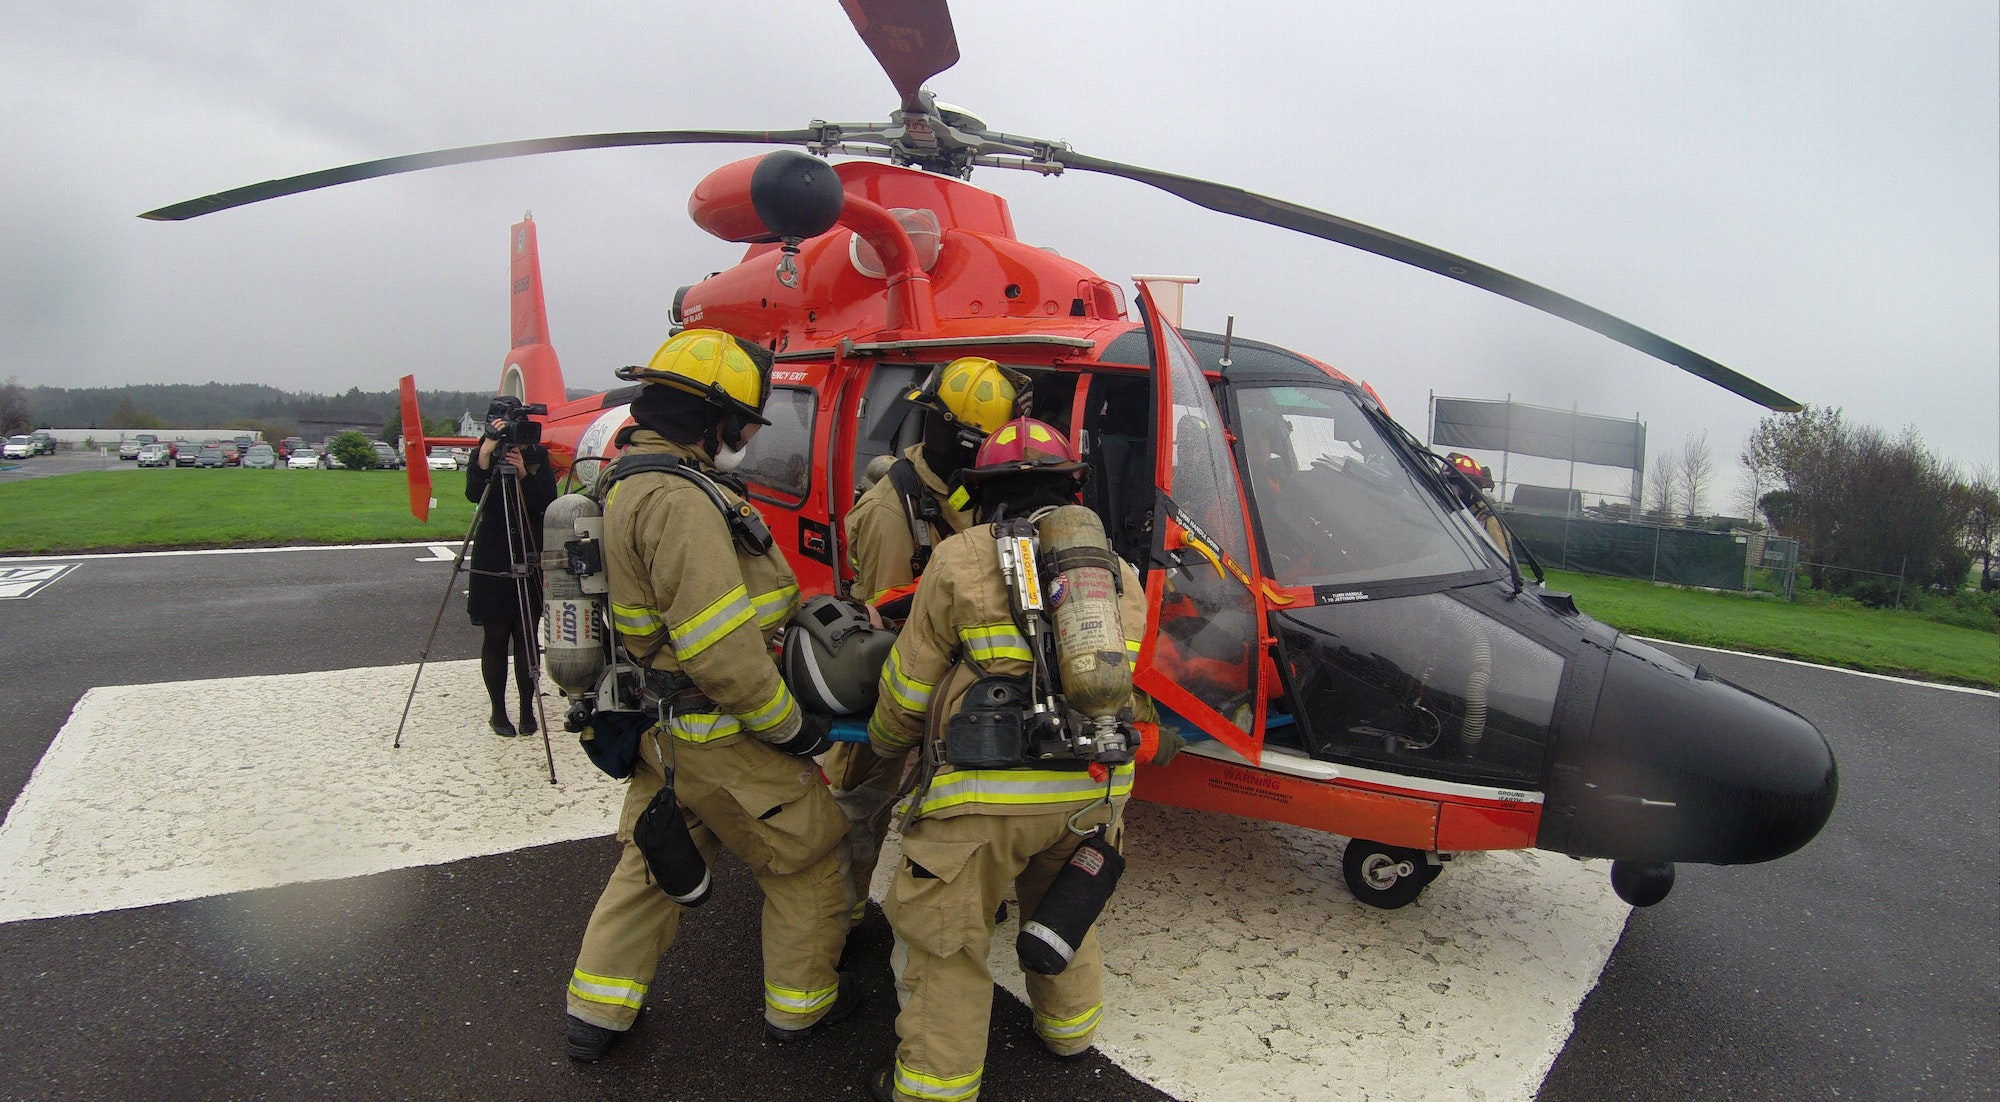 Firefighters loading a patient into a Coast Guard helicopter.